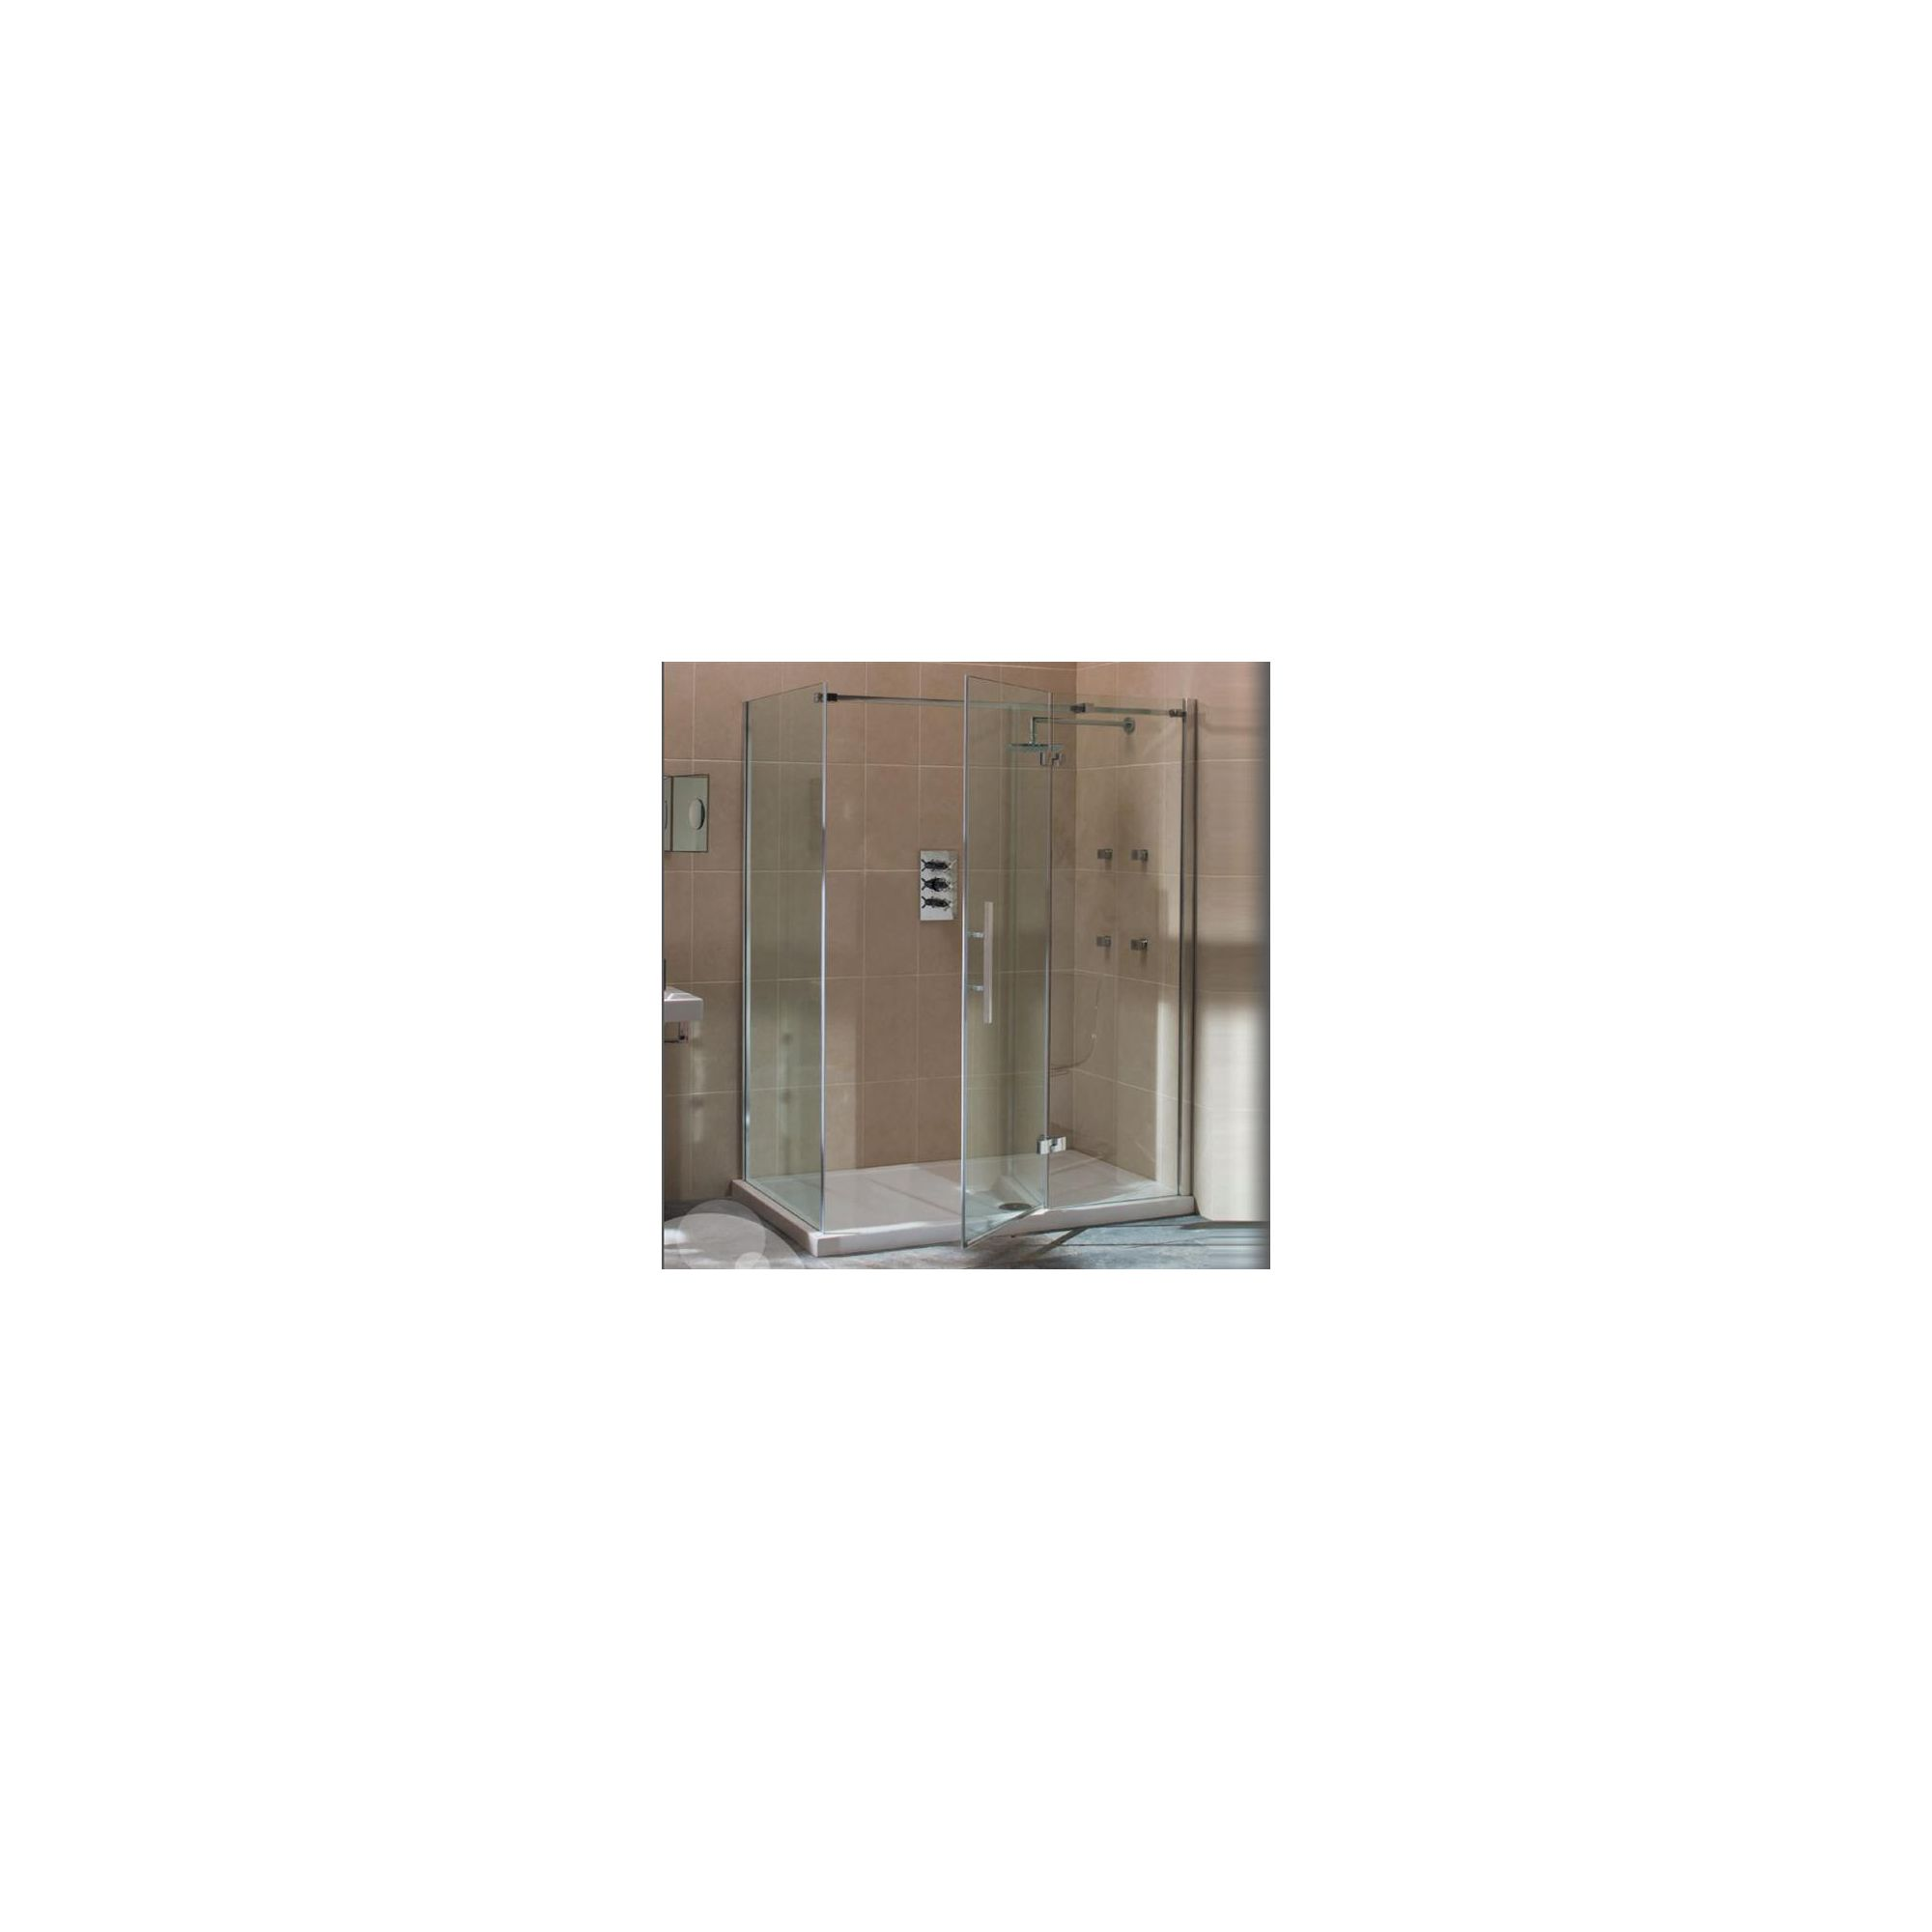 Merlyn Vivid Nine Hinged Door Shower Enclosure with Inline Panel, 1700mm x 800mm, Right Handed, Low Profile Tray, 8mm Glass at Tesco Direct